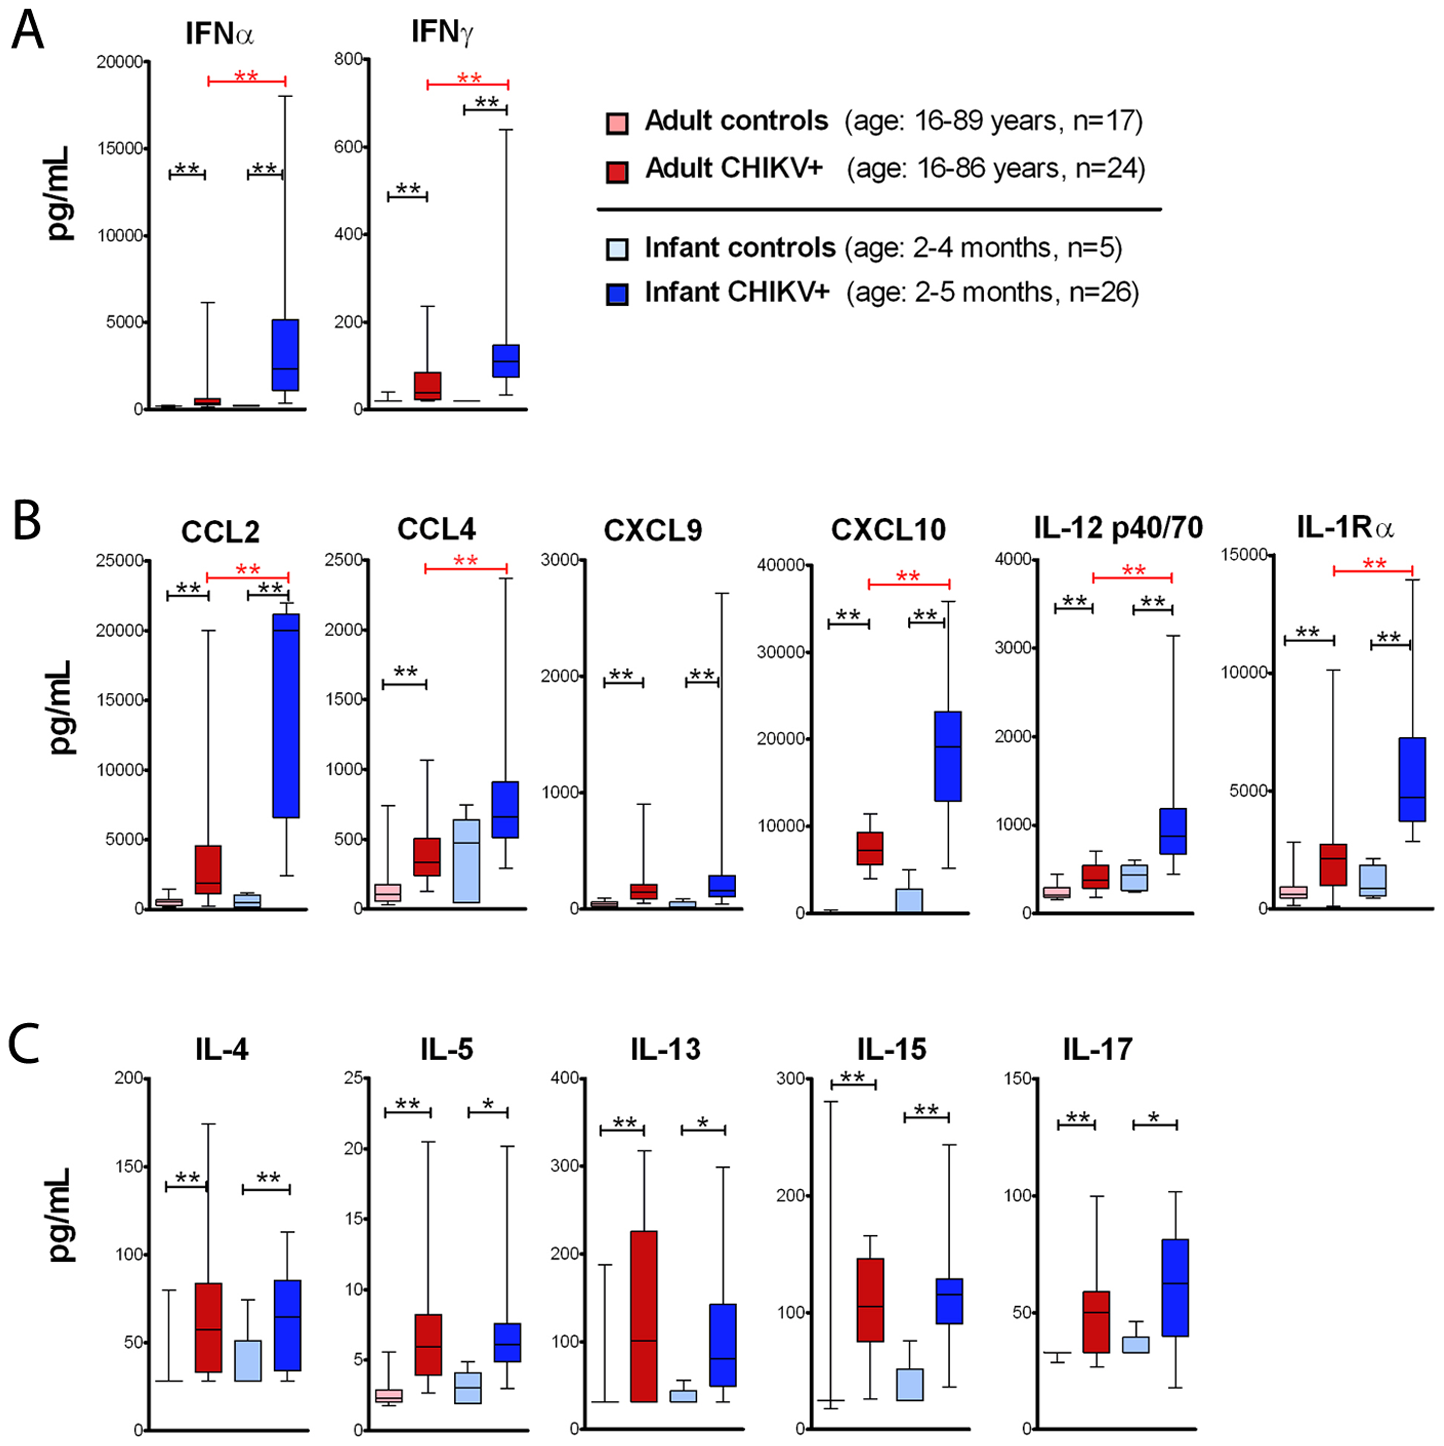 Serum concentration of IFN and IFN-induced chemokines is higher in CHIKV infected infants as compared to adults.